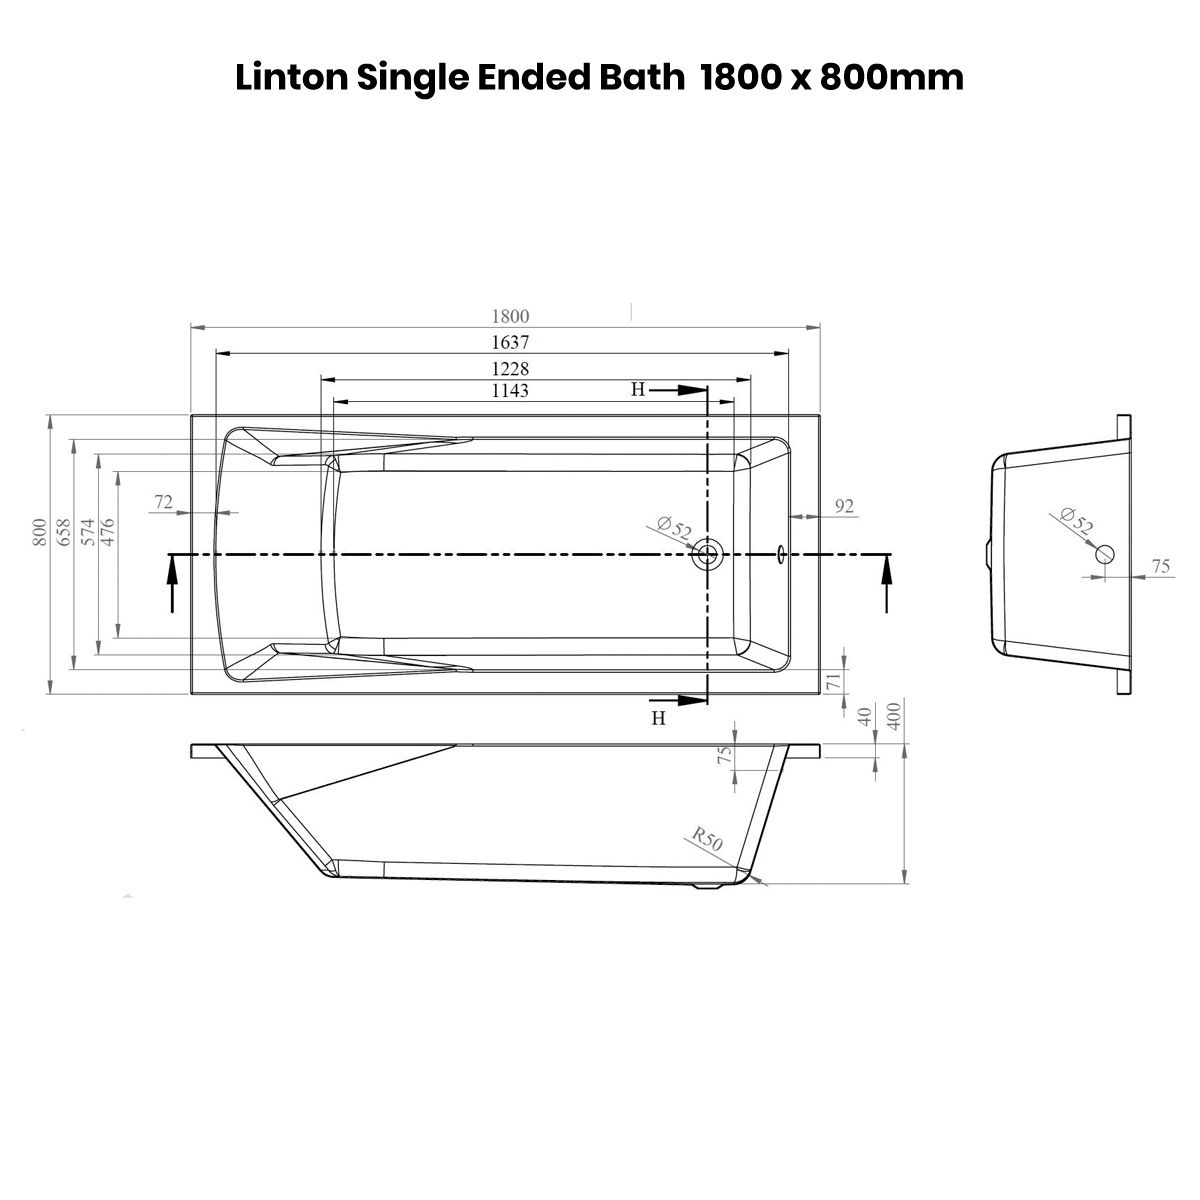 Premier Linton Single Ended Bath 1800 x 800mm Dimensions